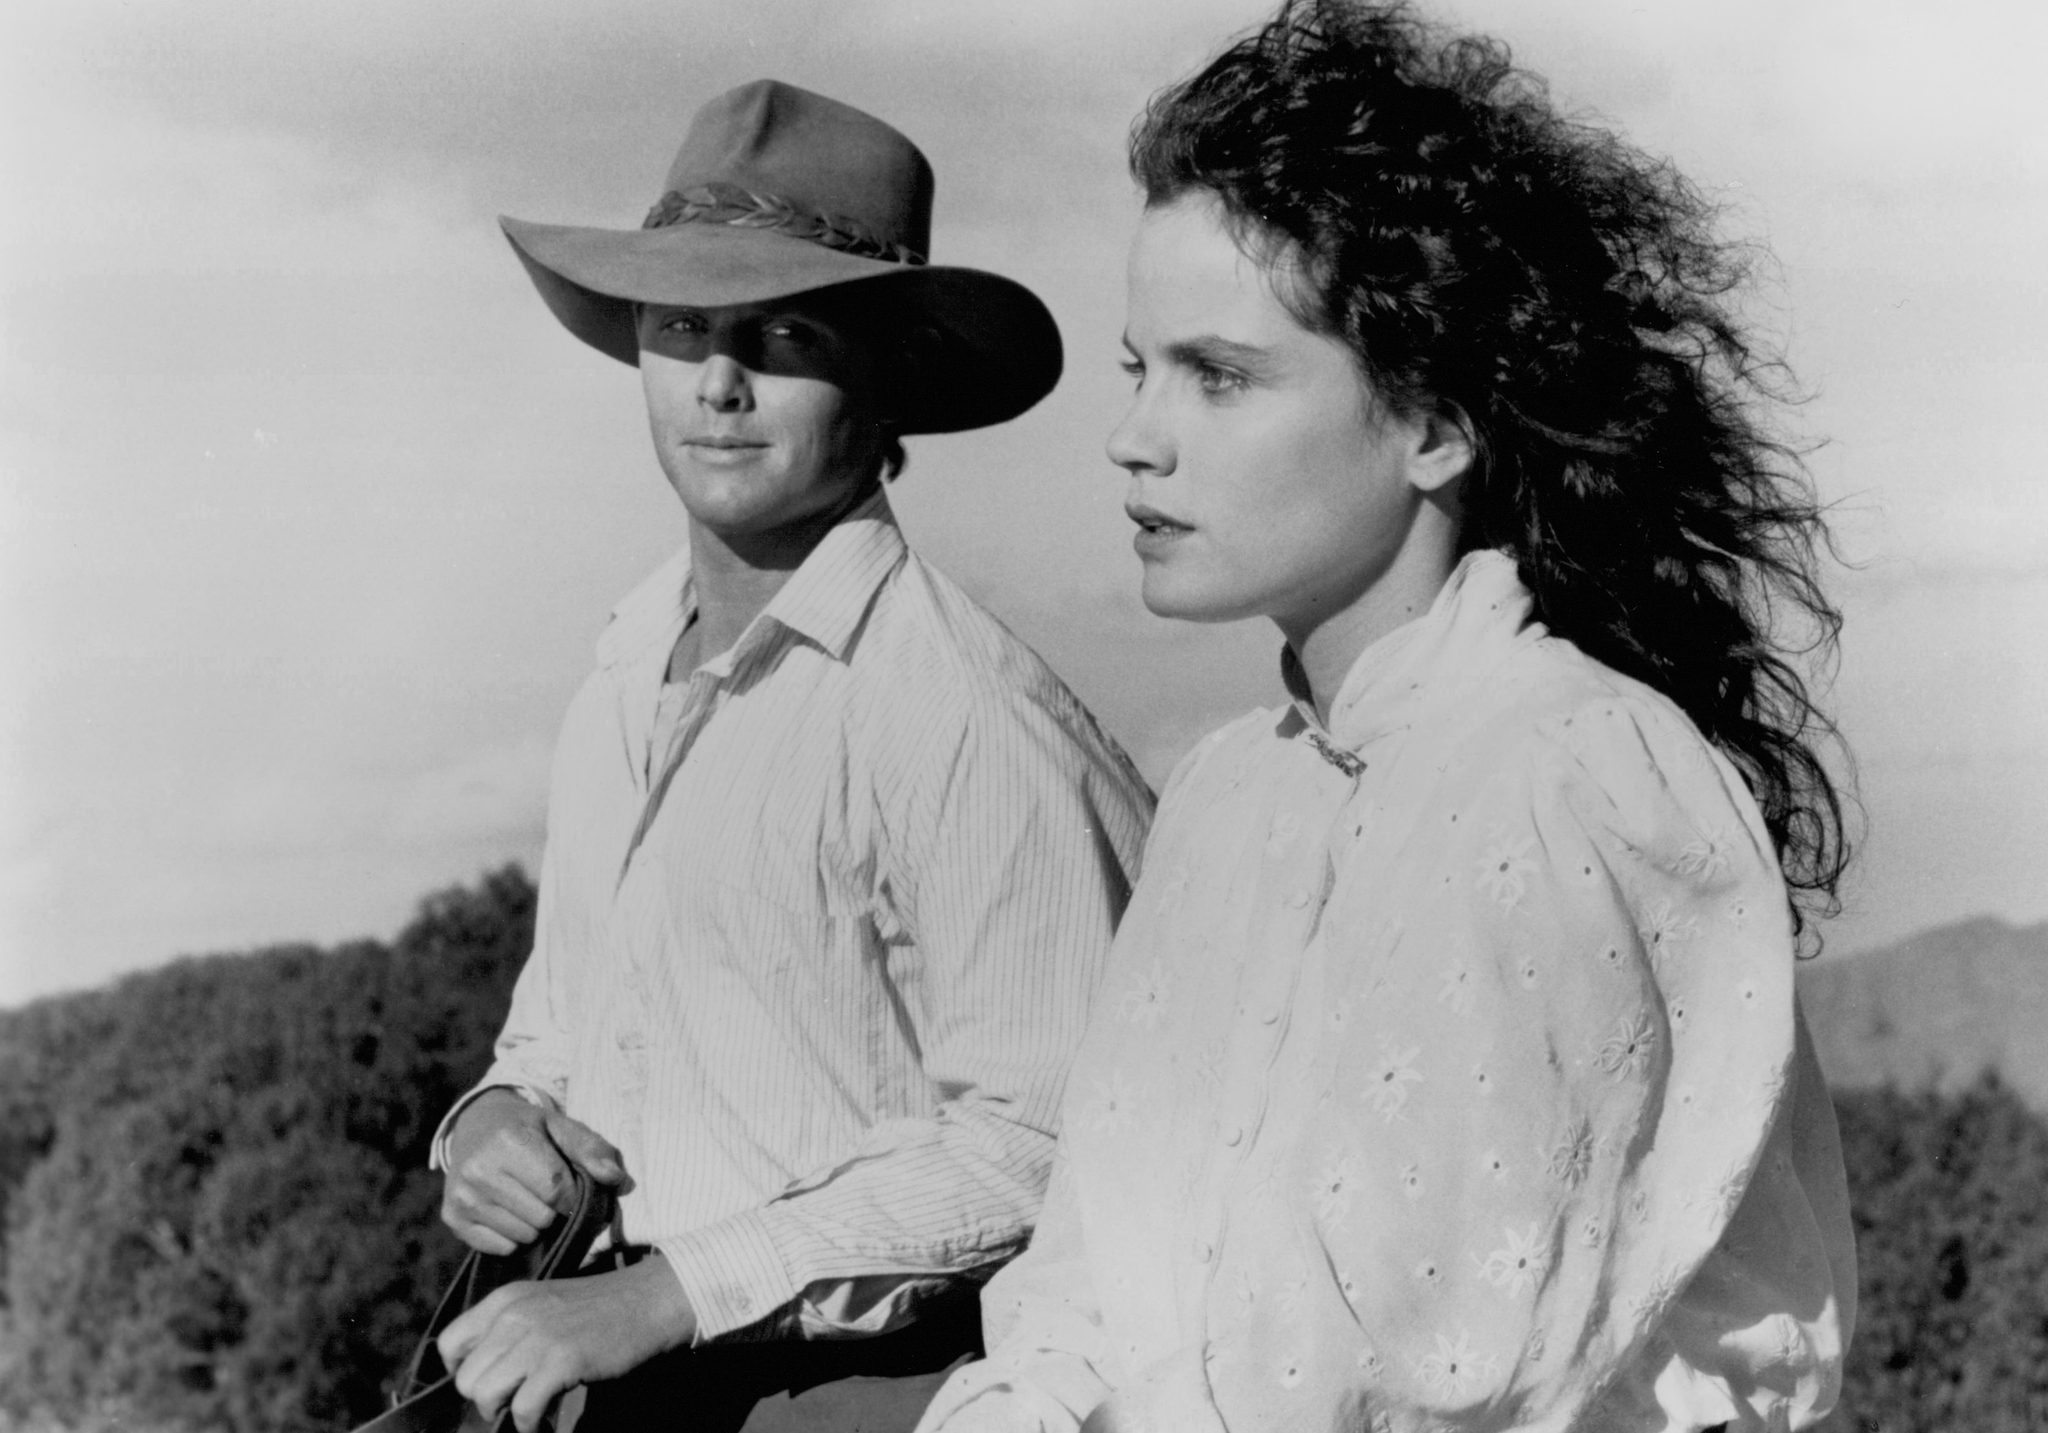 Tom Burlinson and Sigrid Thornton in The Man from Snowy River II (1988)